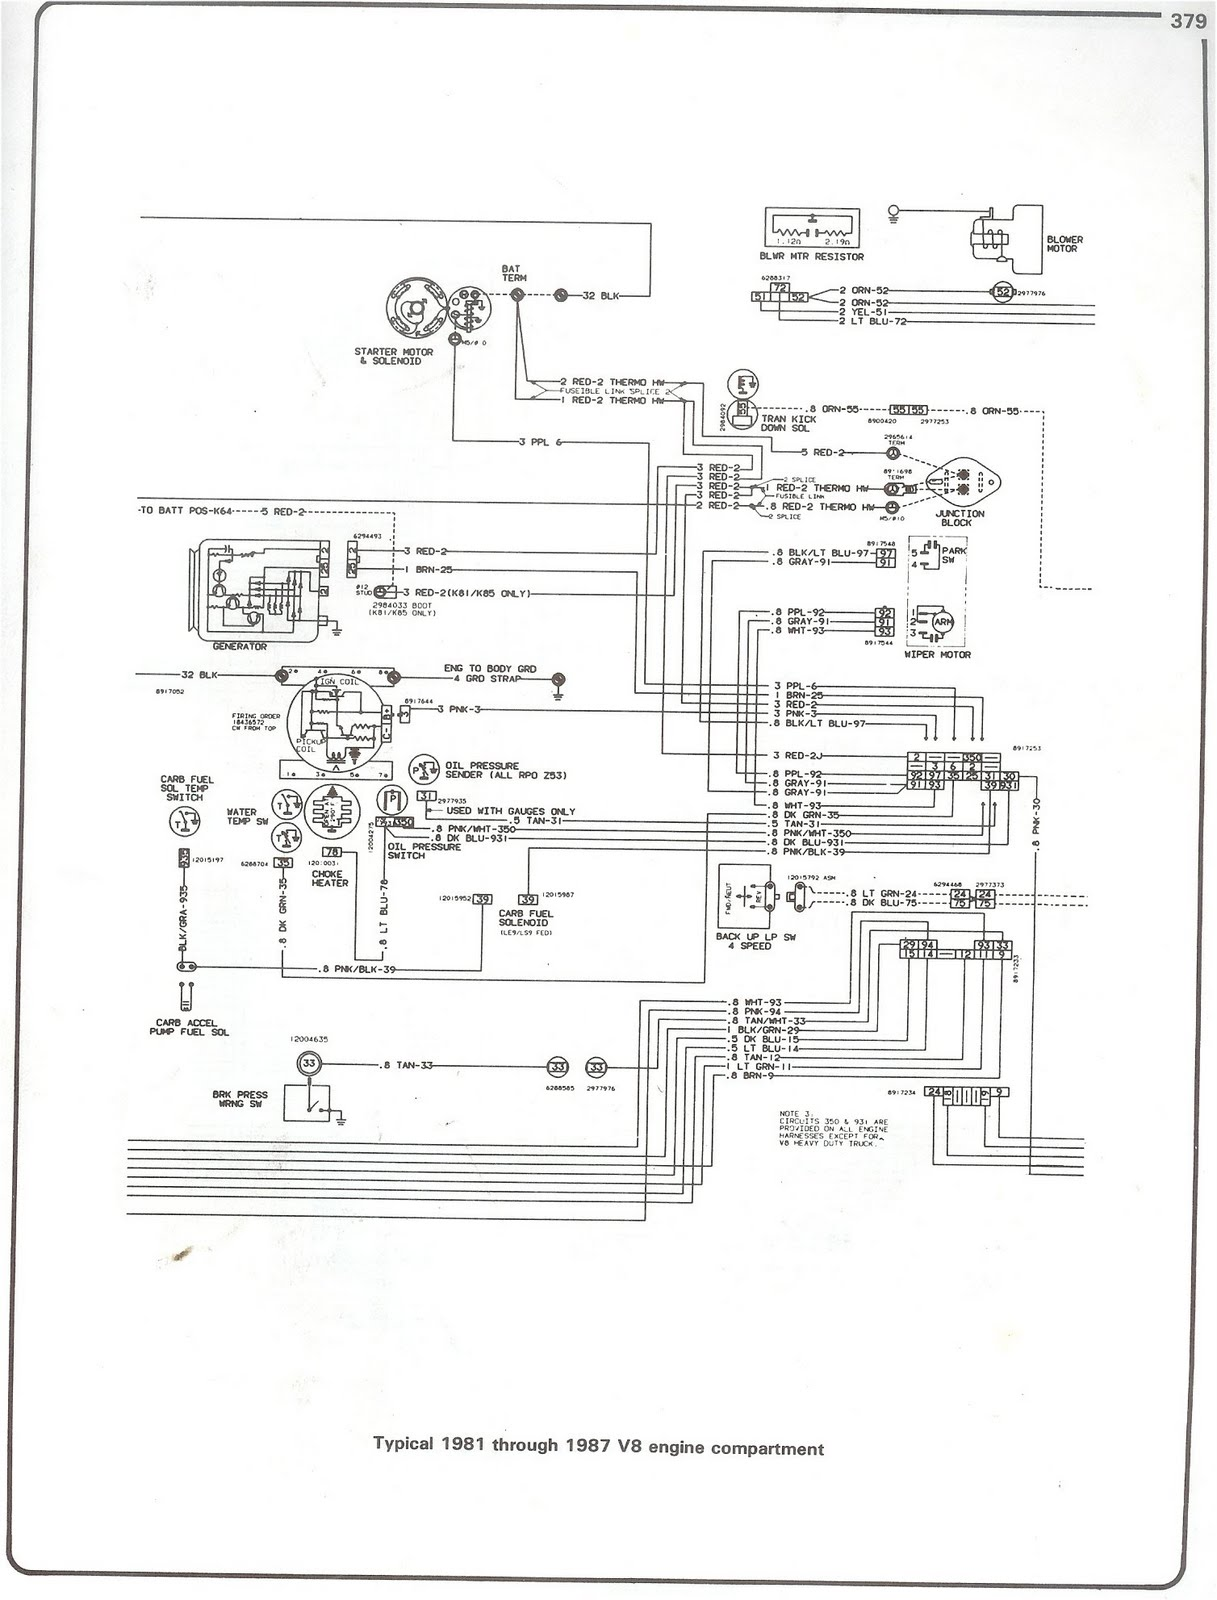 small resolution of 1976 chevy truck wiring diagram wiring diagram perfomance 1976 chevy truck wiring harness diagram 1976 circuit diagrams